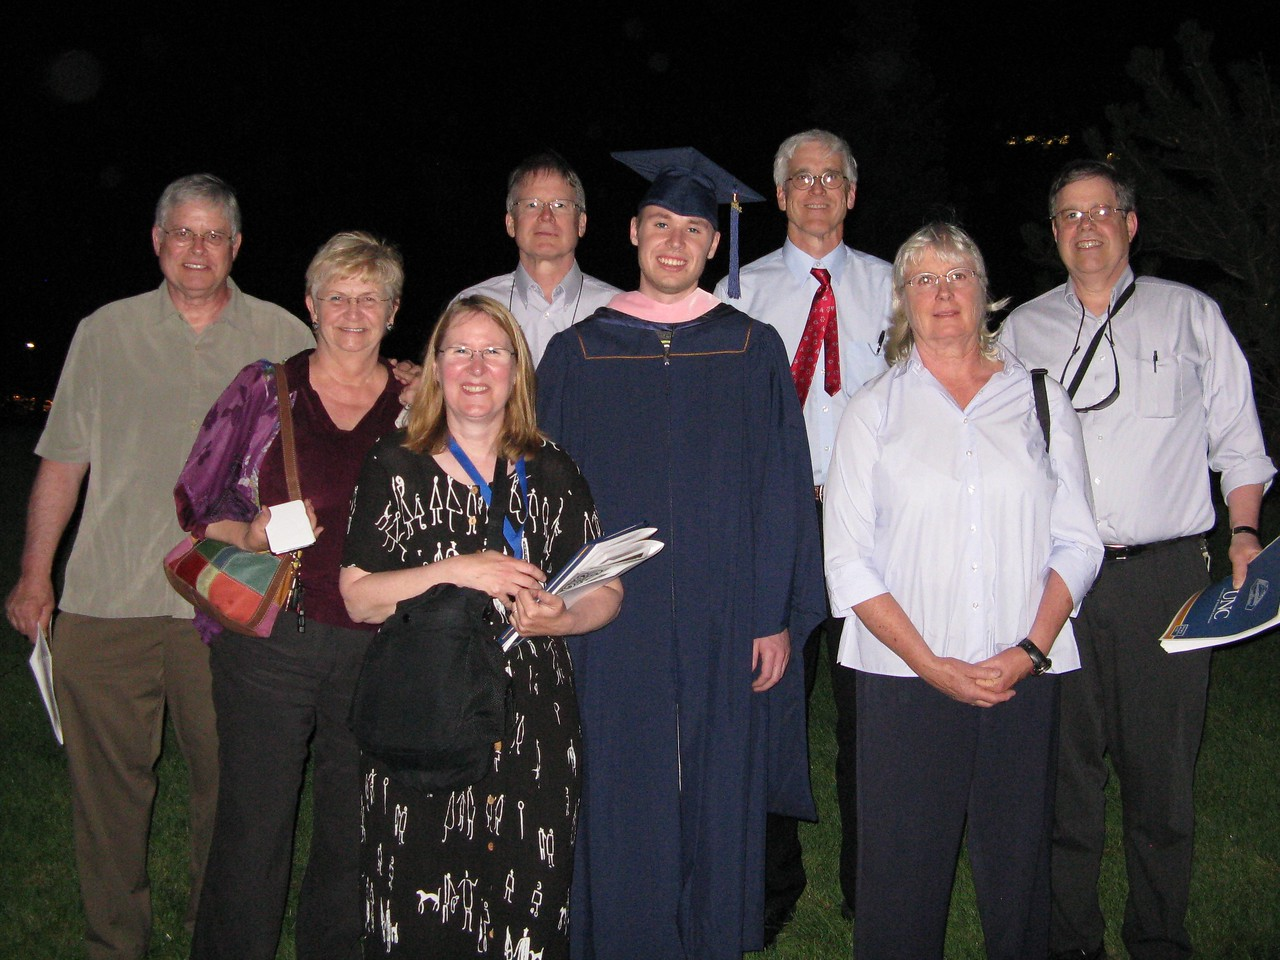 All of us who attended his graduation. Wendell, Kathi, Mary, Richard, Kevin, Glenn, Connie and Martin.